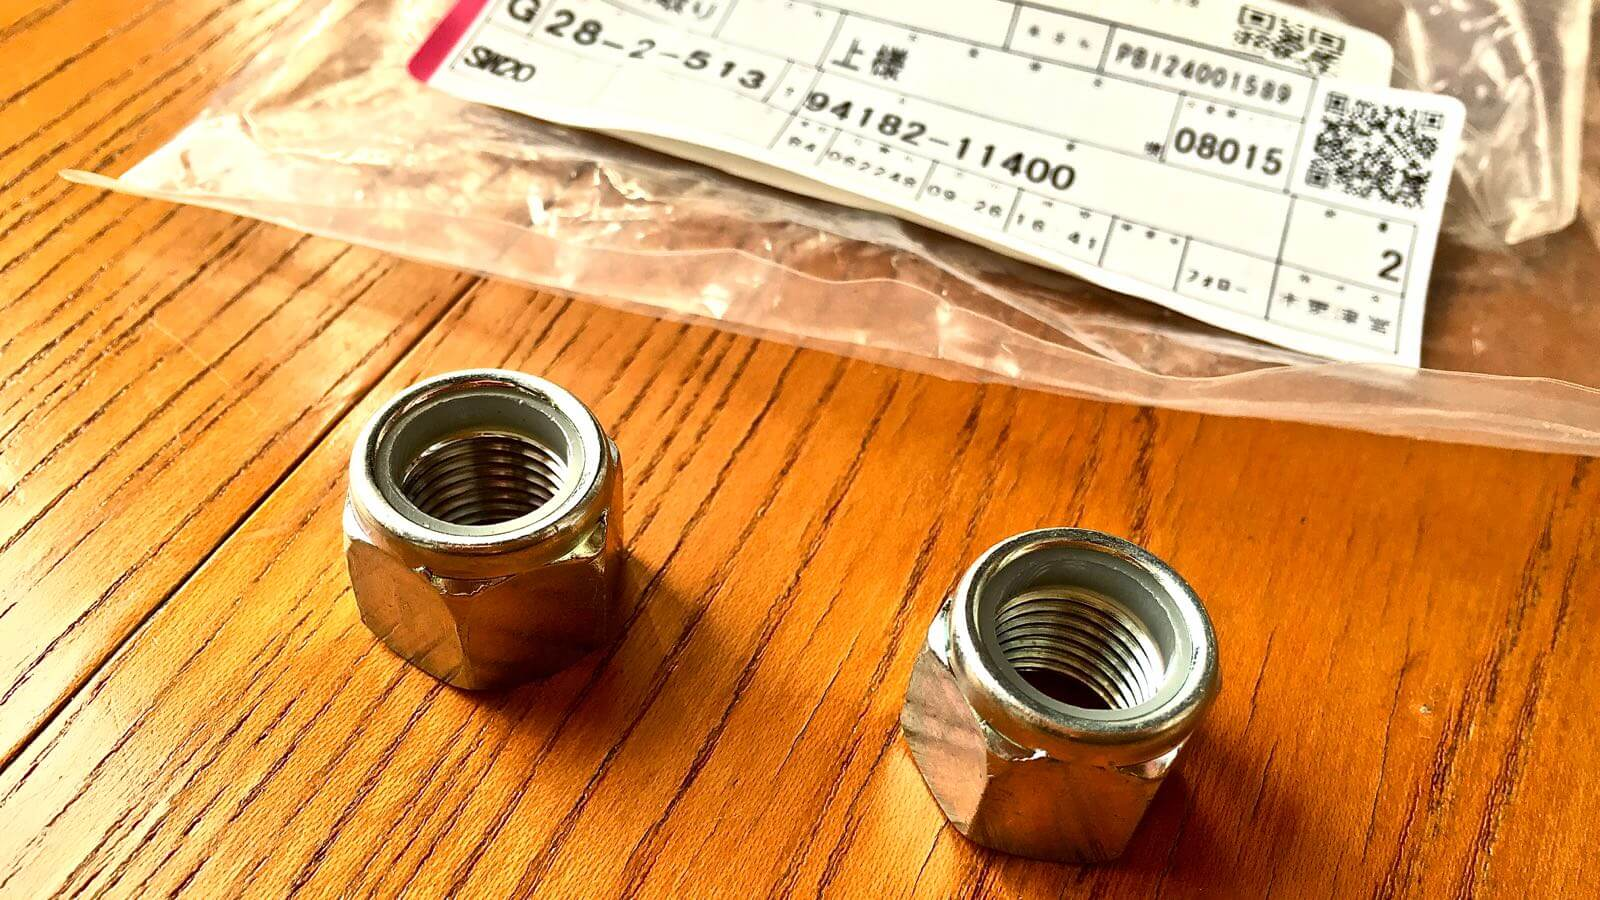 0146 MR2 Restore Plan  Part 19 14 SW20 Rear shock nut part number = 94182 11400